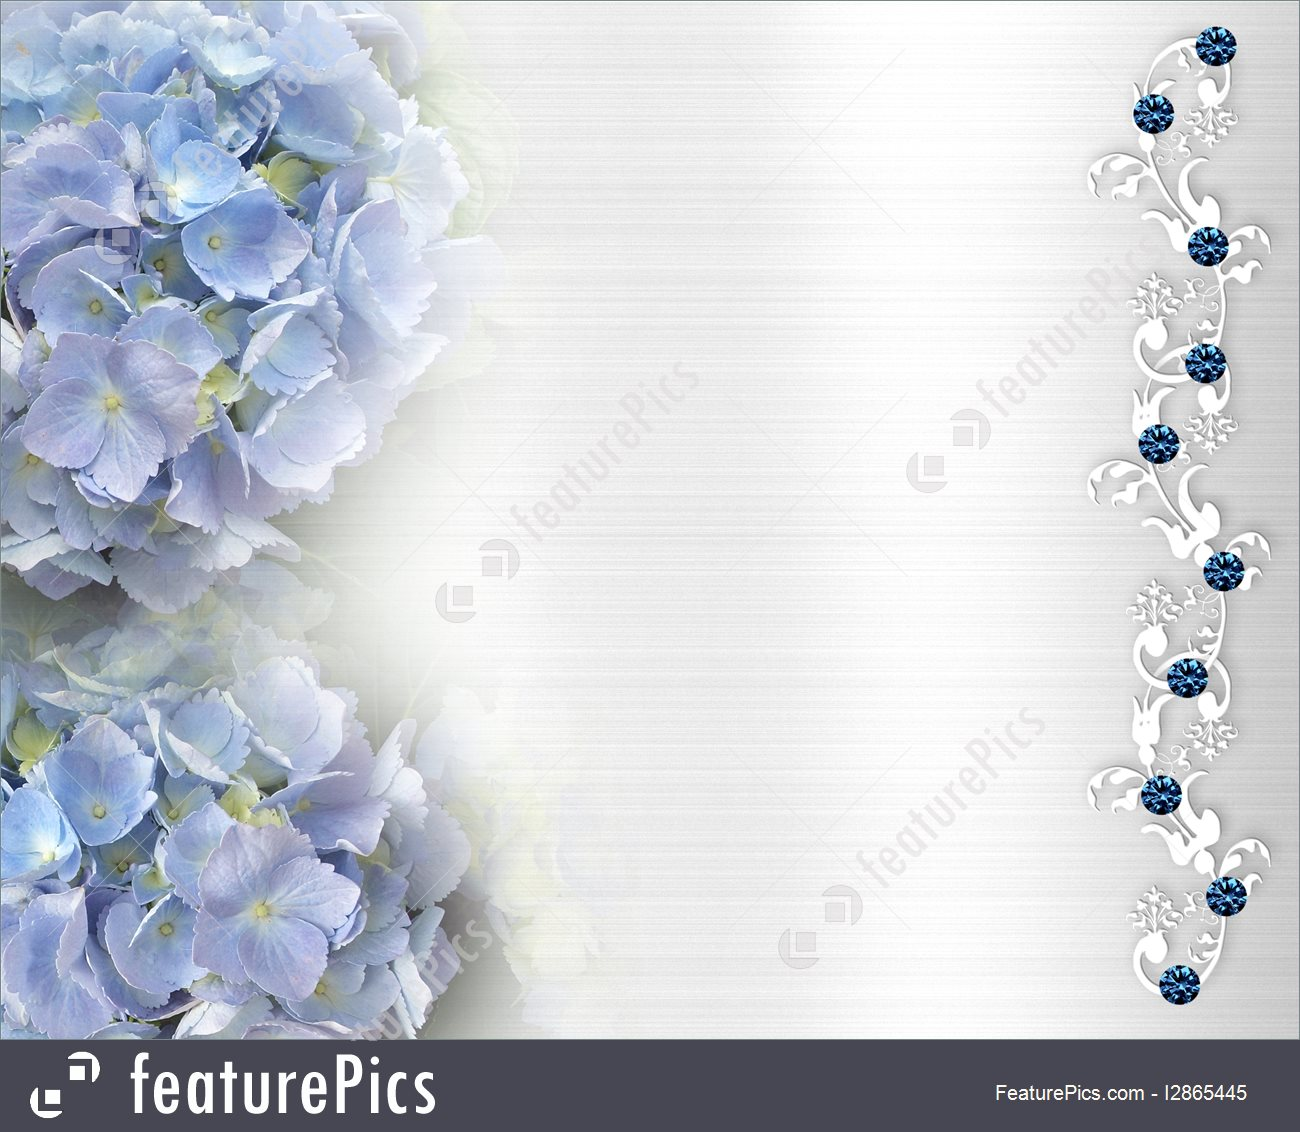 Background For Wedding Invitation: Download Wedding Invitation Wallpaper Gallery